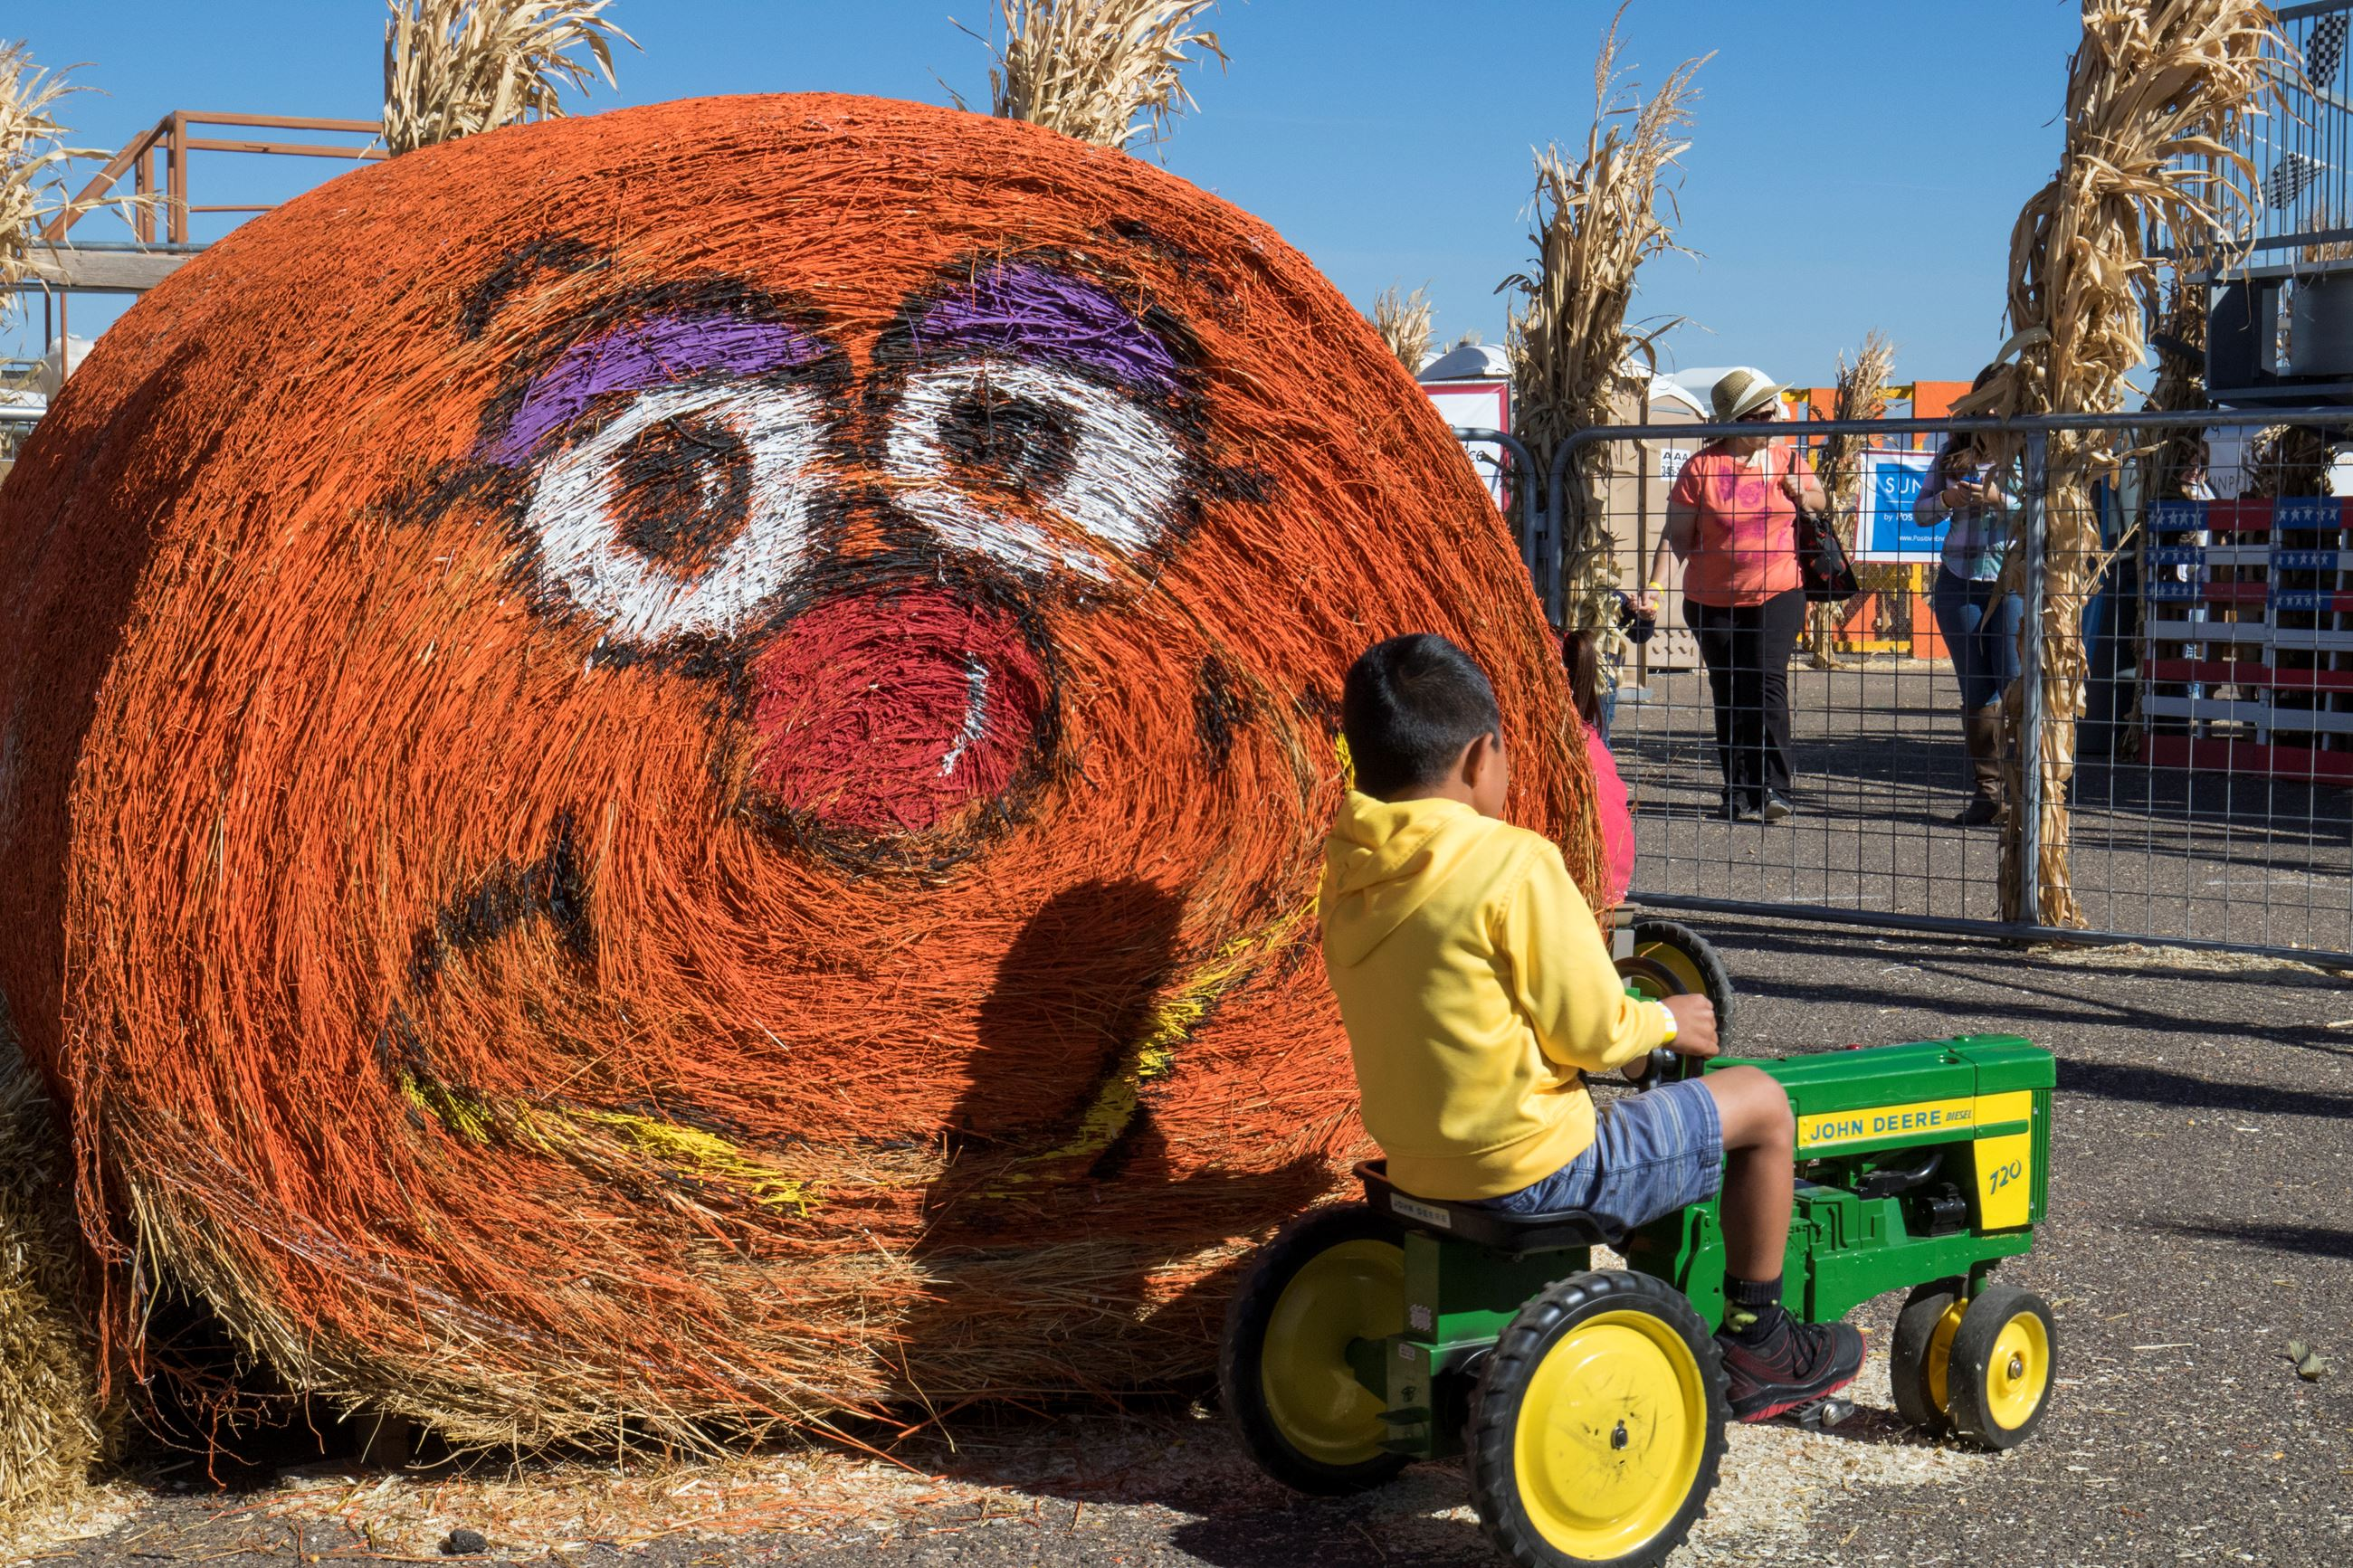 Rio Rancho Pumpkin Patch